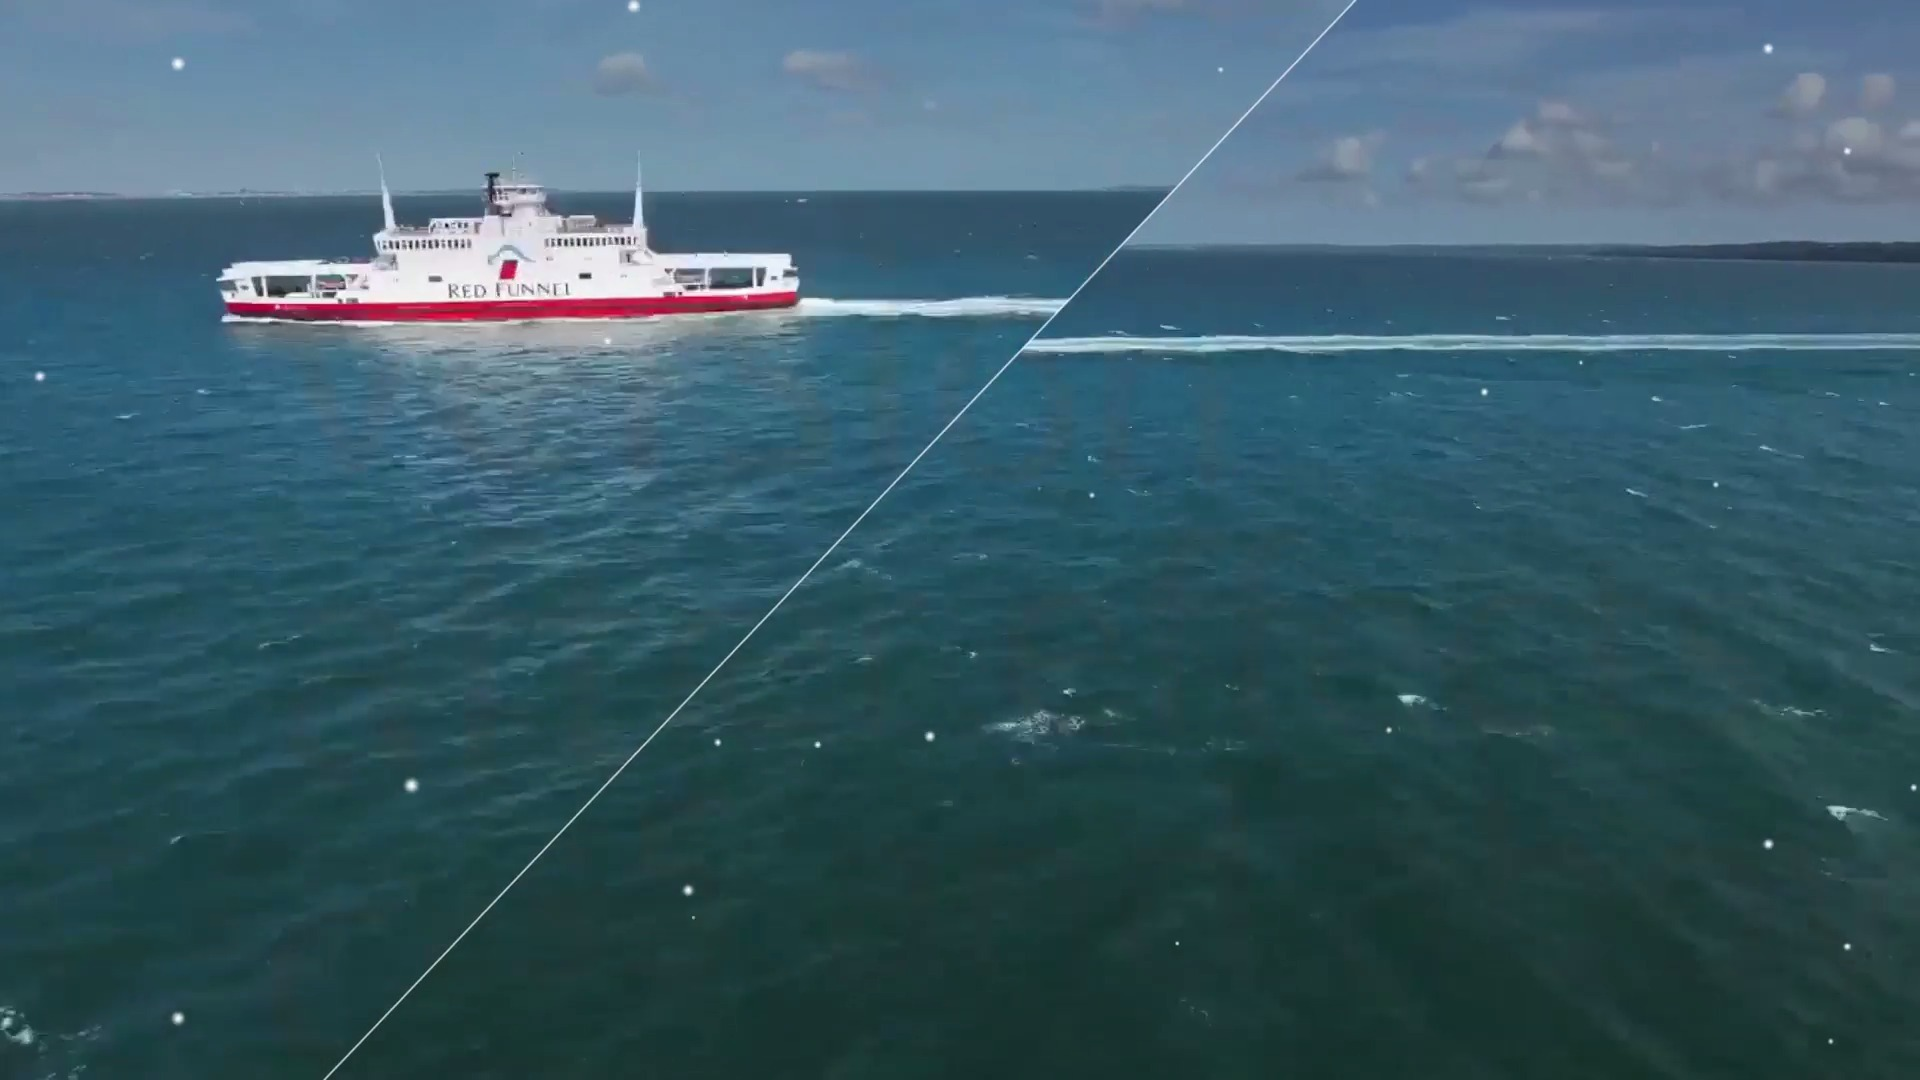 Red Funnel Case Study